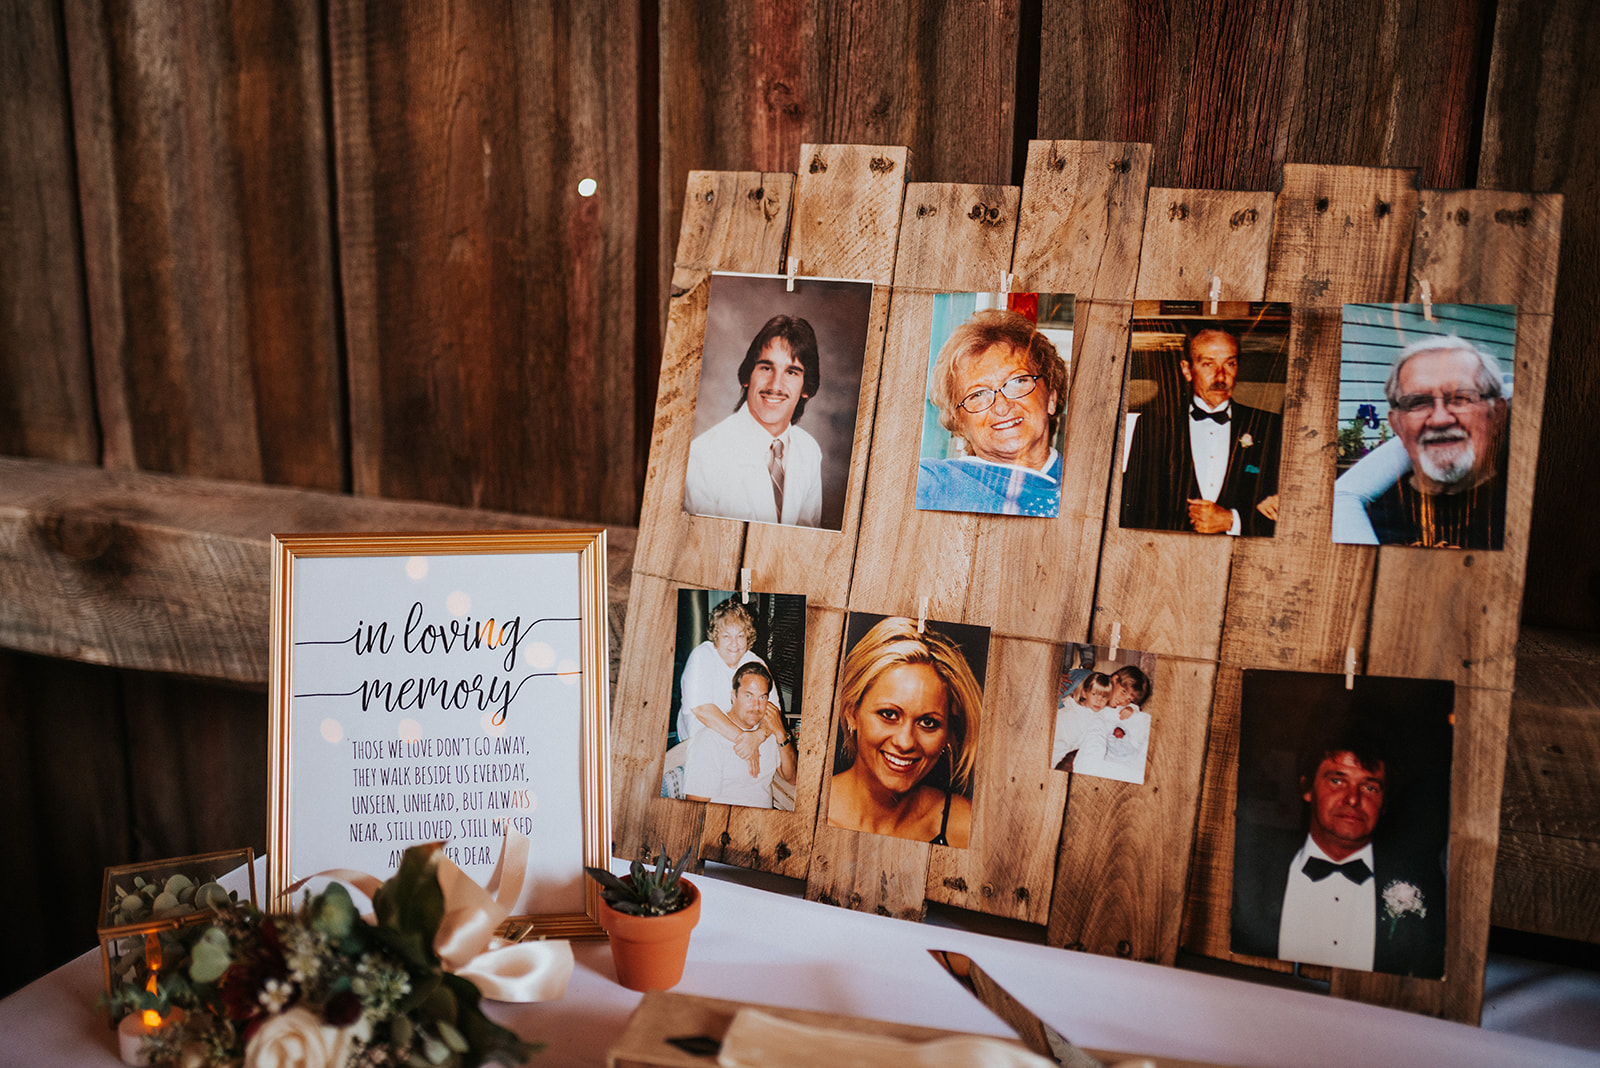 overthevineswisconsinwedding_1070.jpg